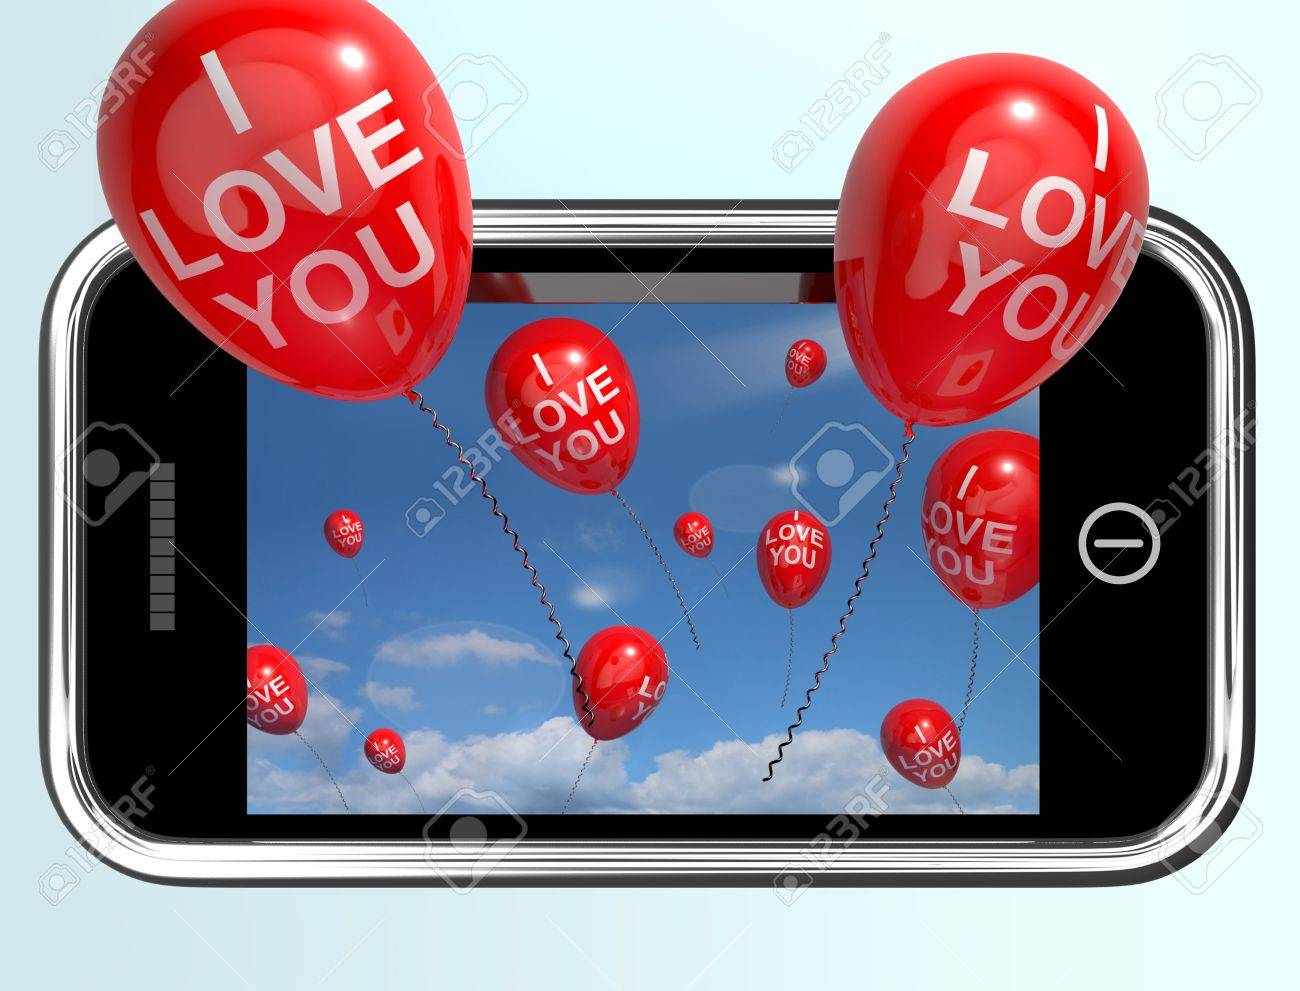 I Love You Red Balloons From A Mobile Smartphone Stock Photo - 14562506